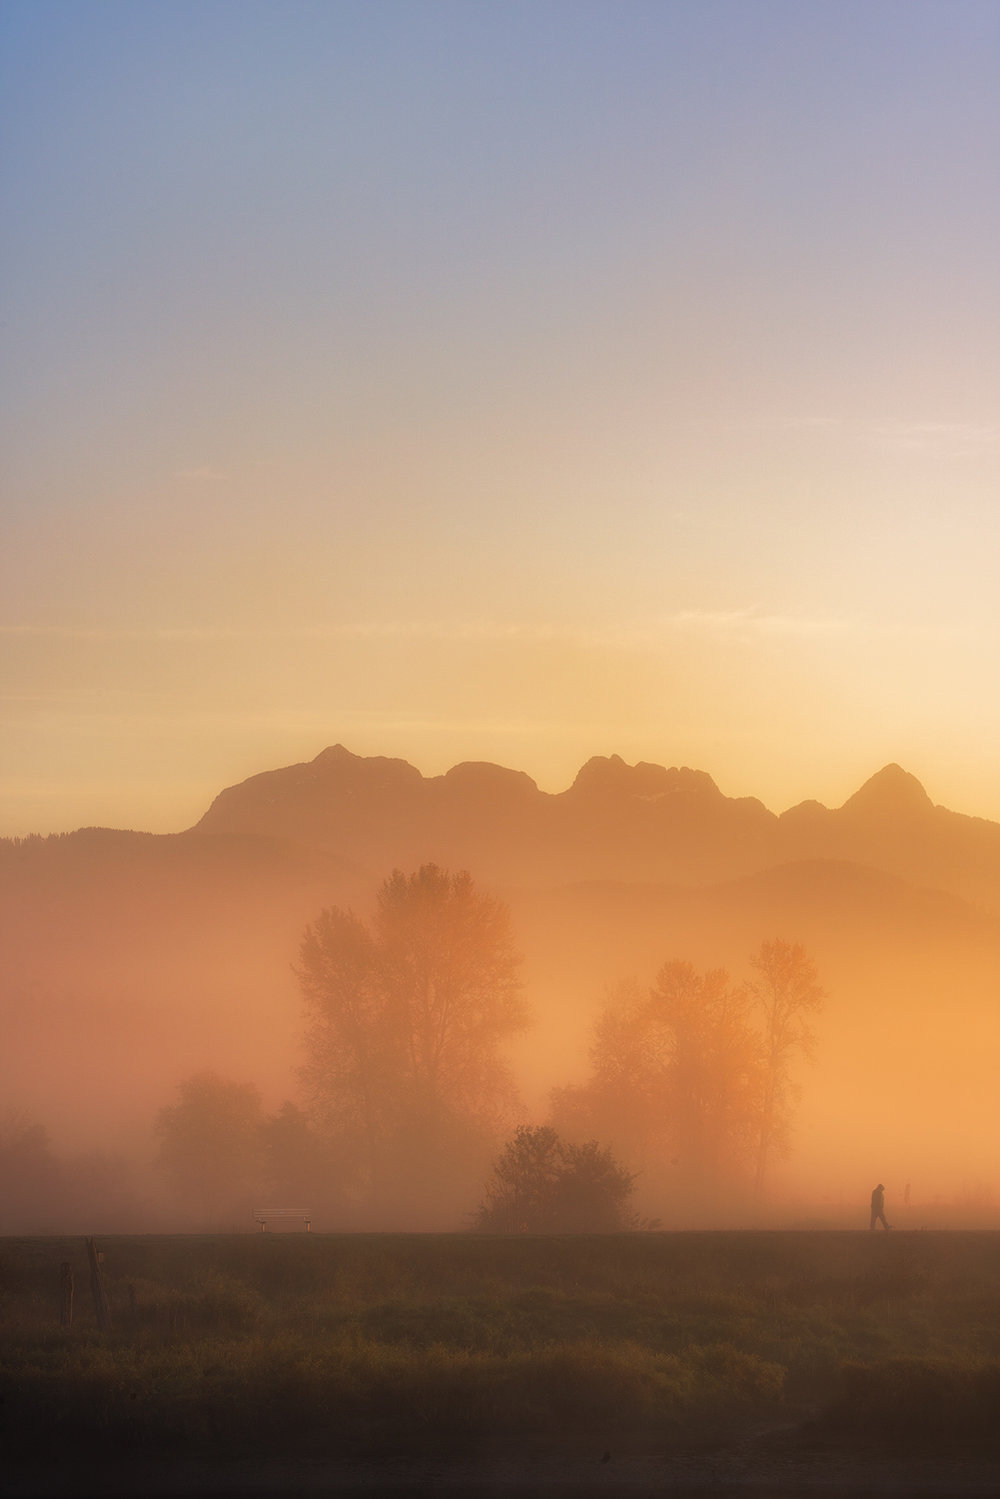 Golden-Ears-Mountain-Pitt-Meadows.jpg